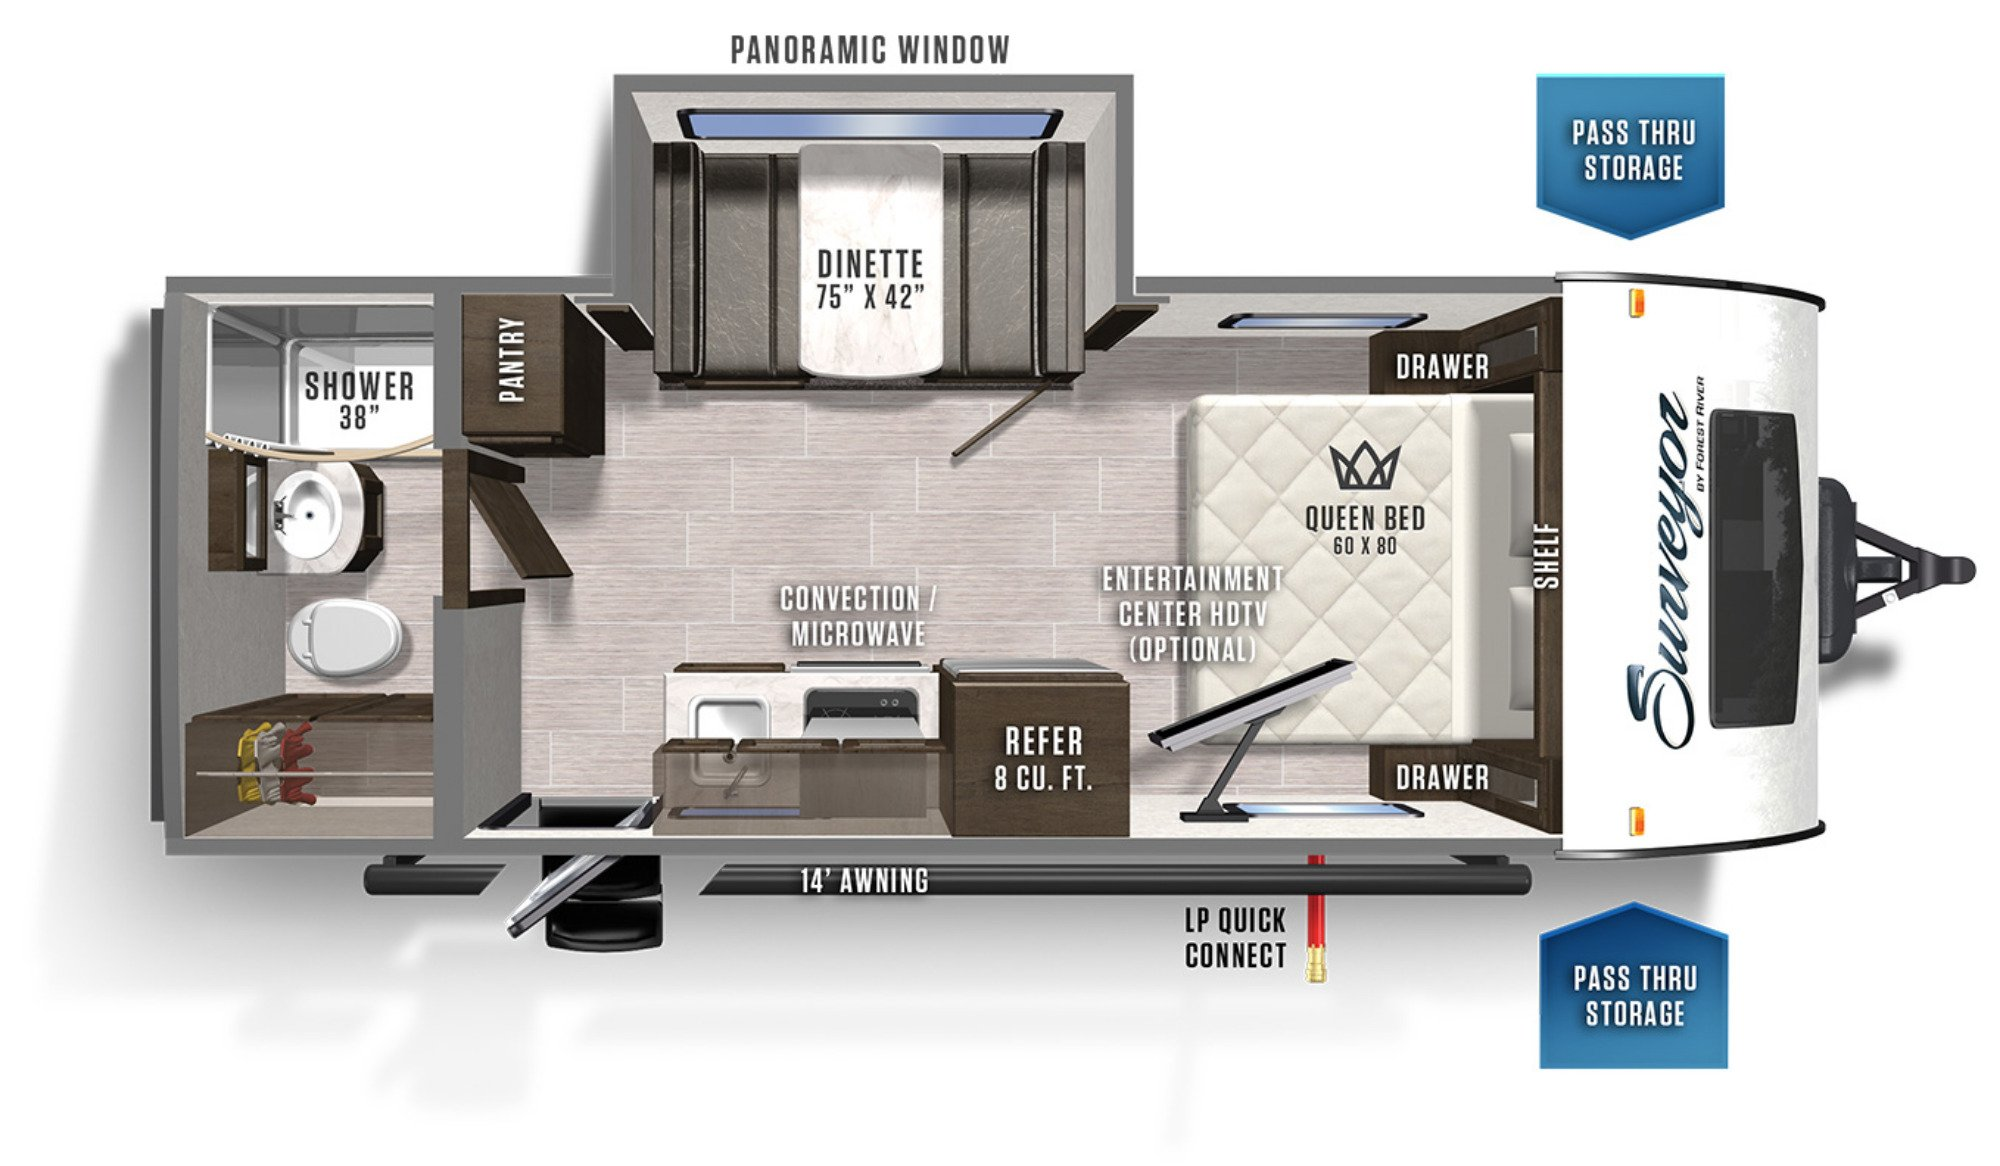 View Floor Plan for 2020 FOREST RIVER SURVEYOR 19RBLE